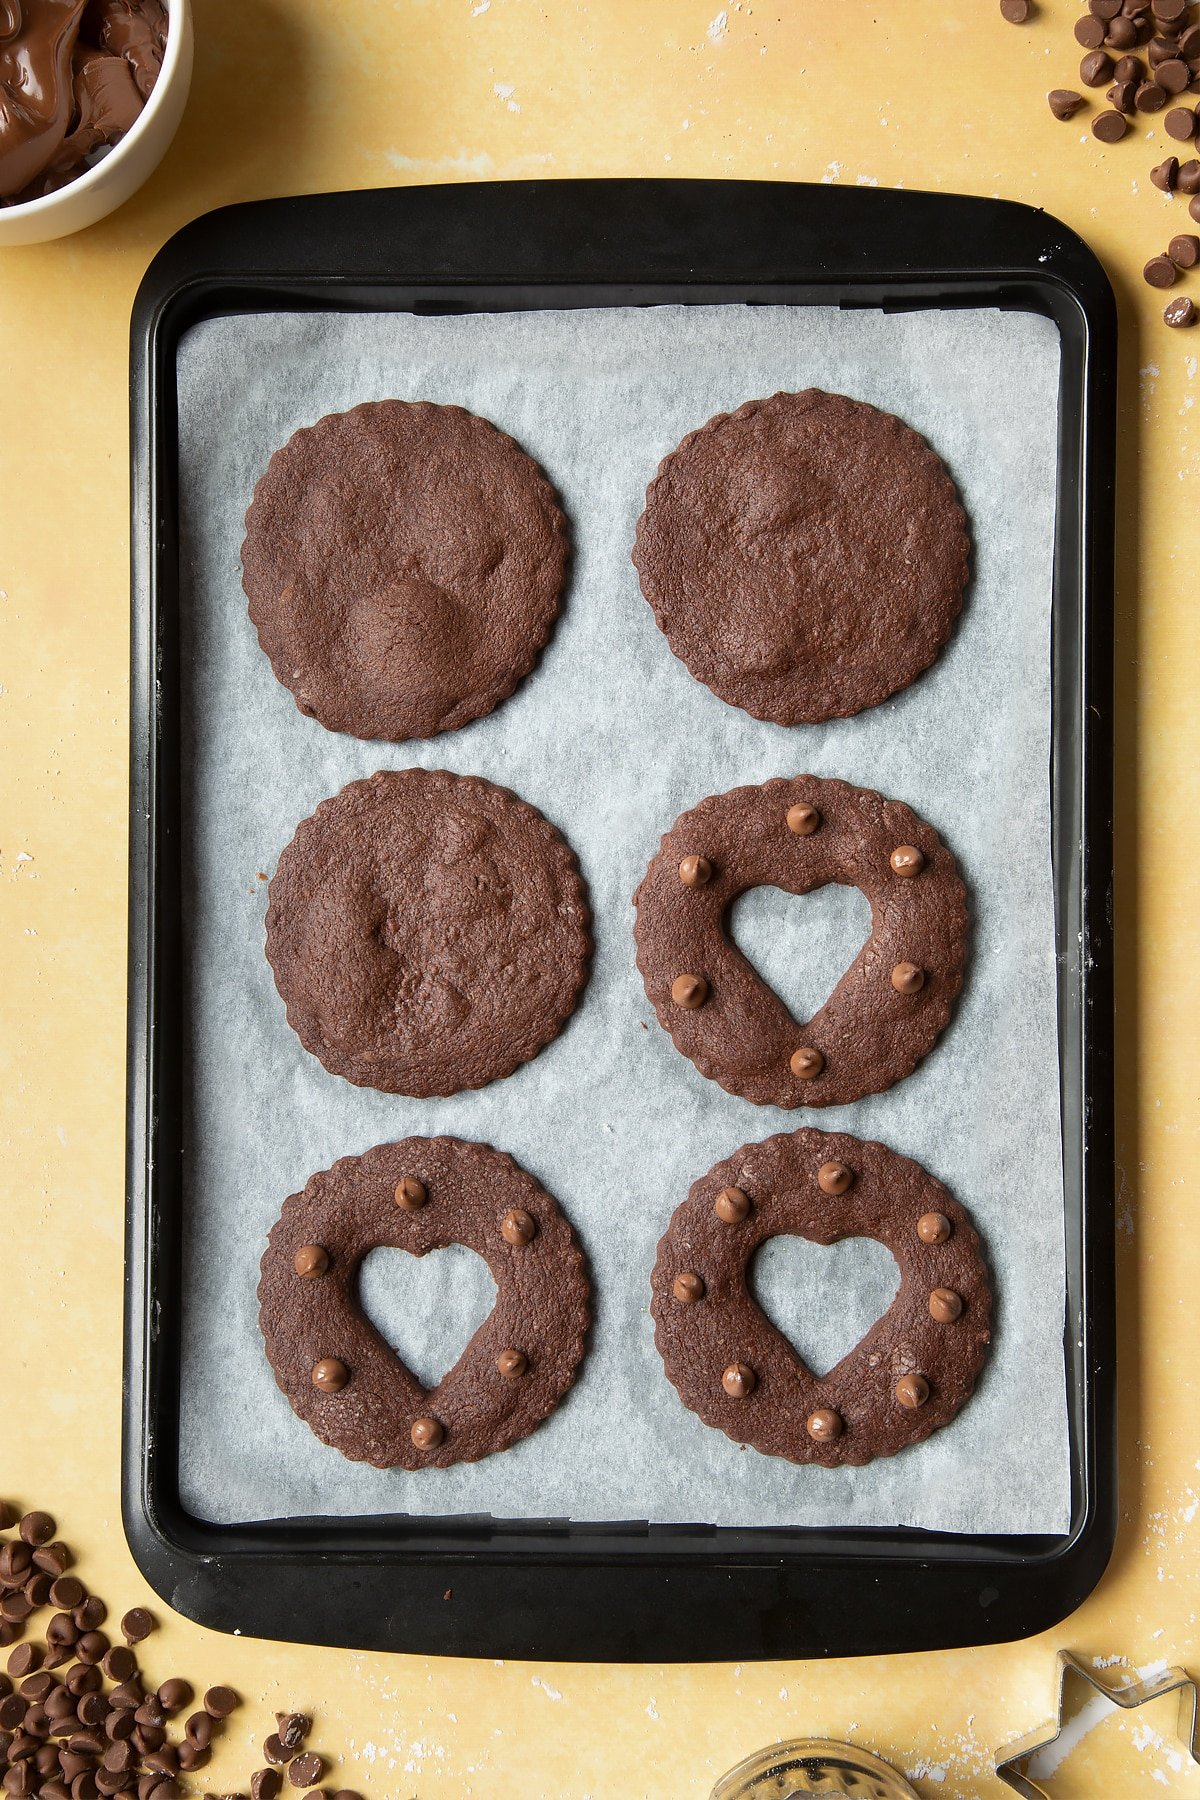 Freshly baked chocolate sandwich cookies on a tray lined with baking paper.